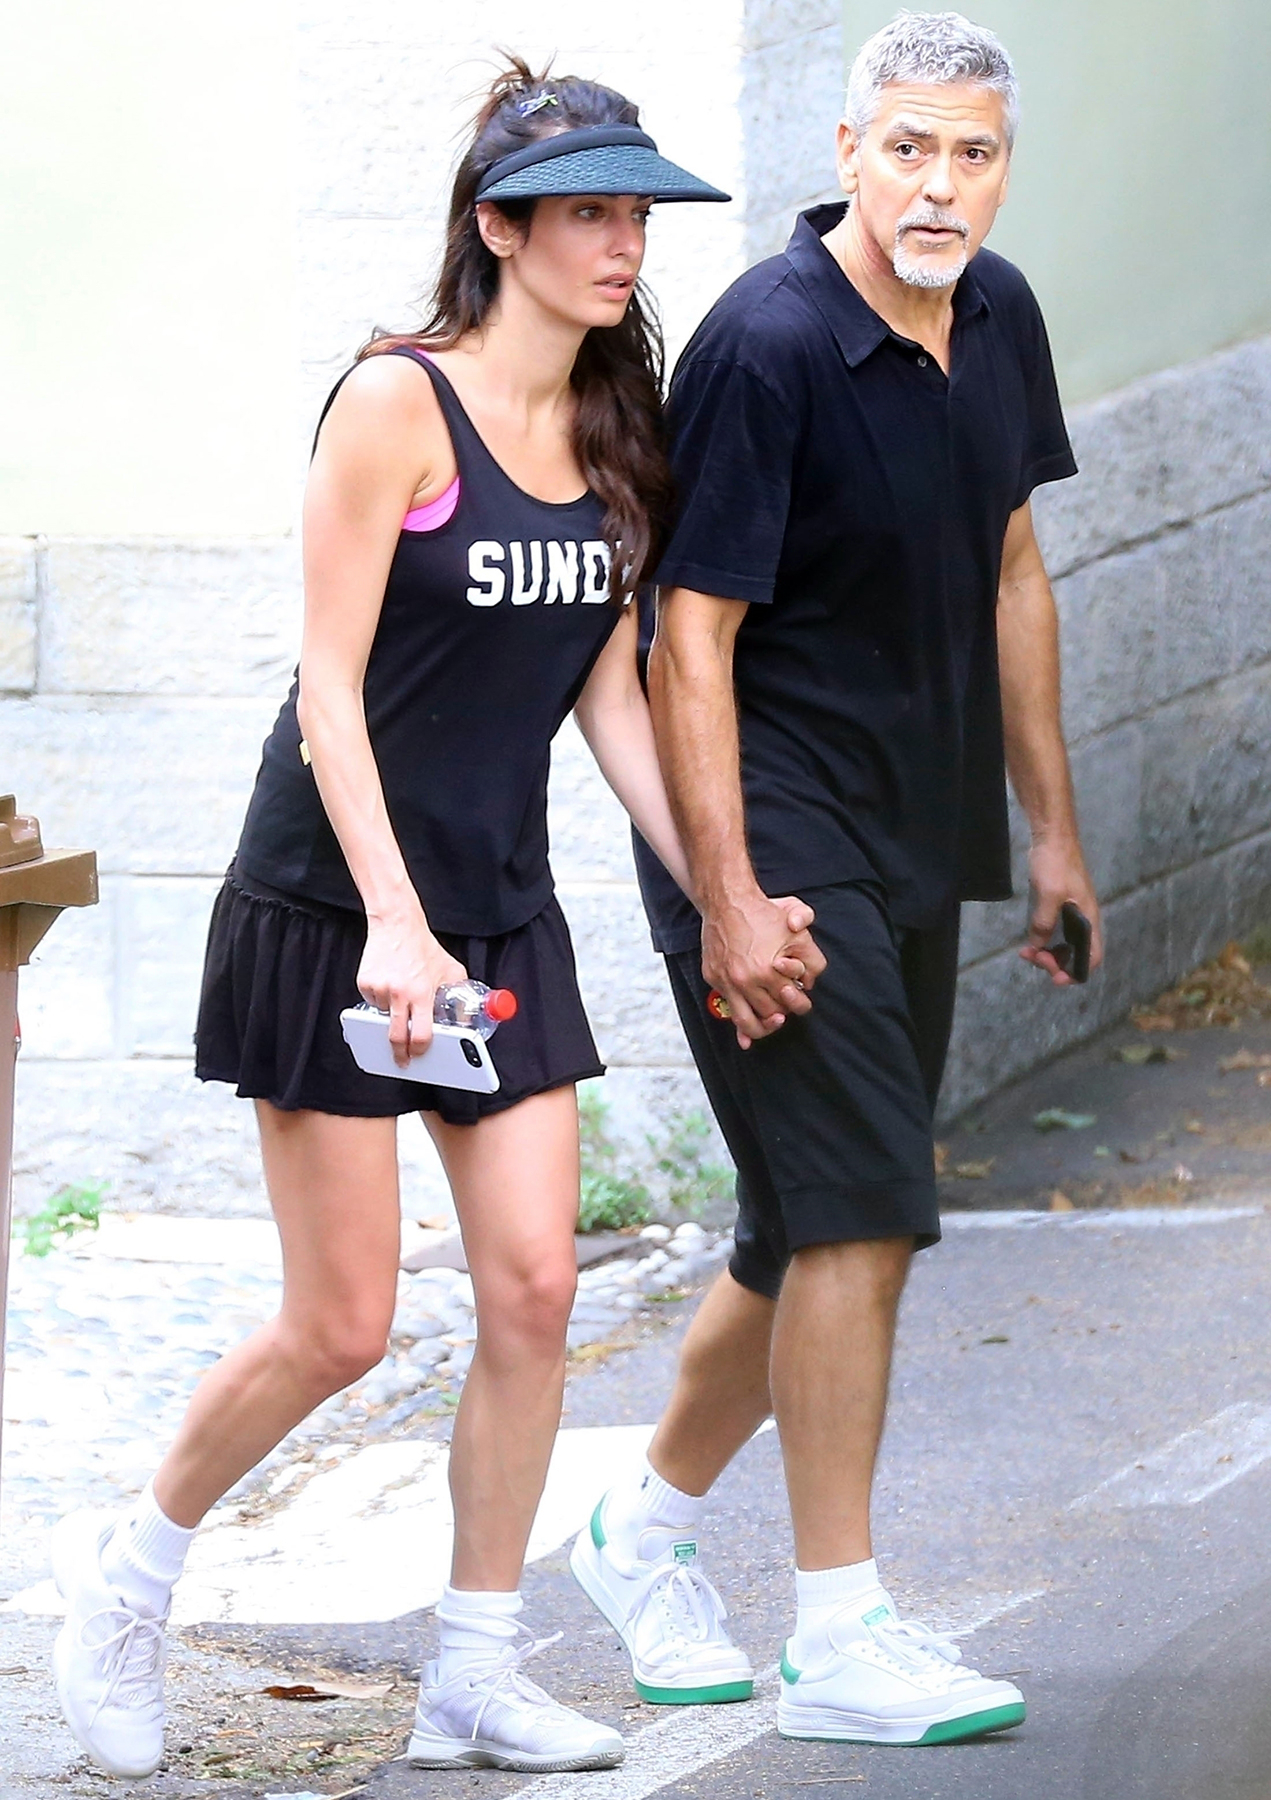 George Clooney and Amal Clooney head home after enjoying a tennis match together in Laglio, Italy, on August 17, 2017.